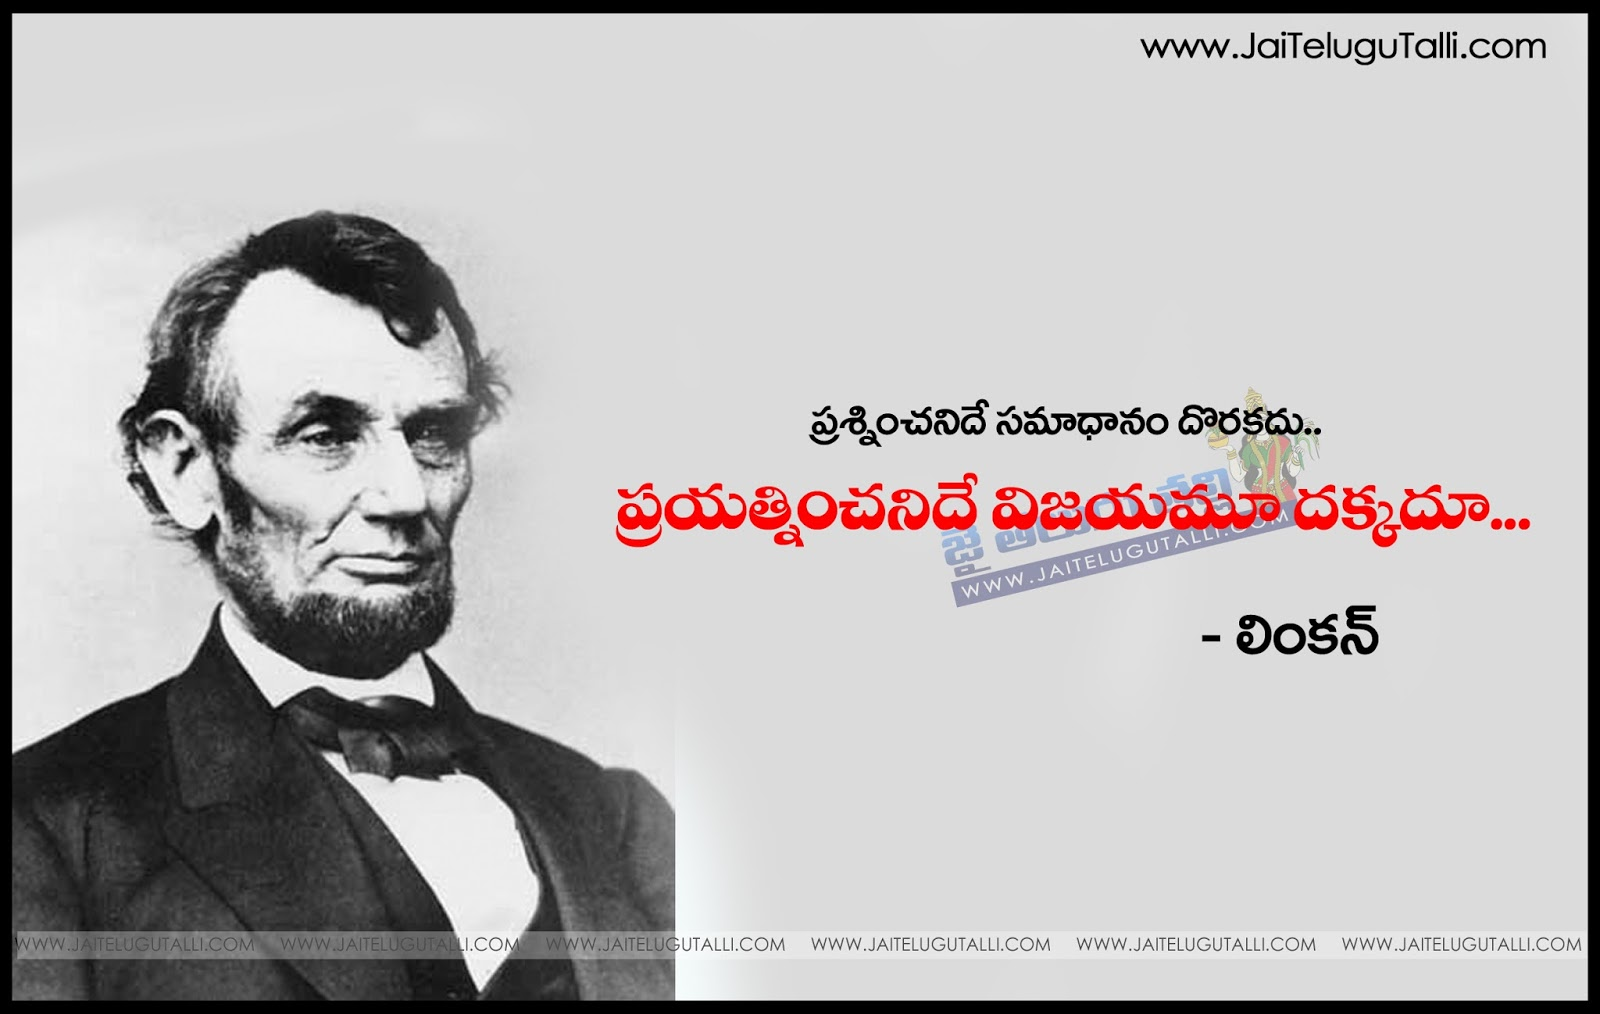 Abraham lincoln telugu quotes images best inspiration life